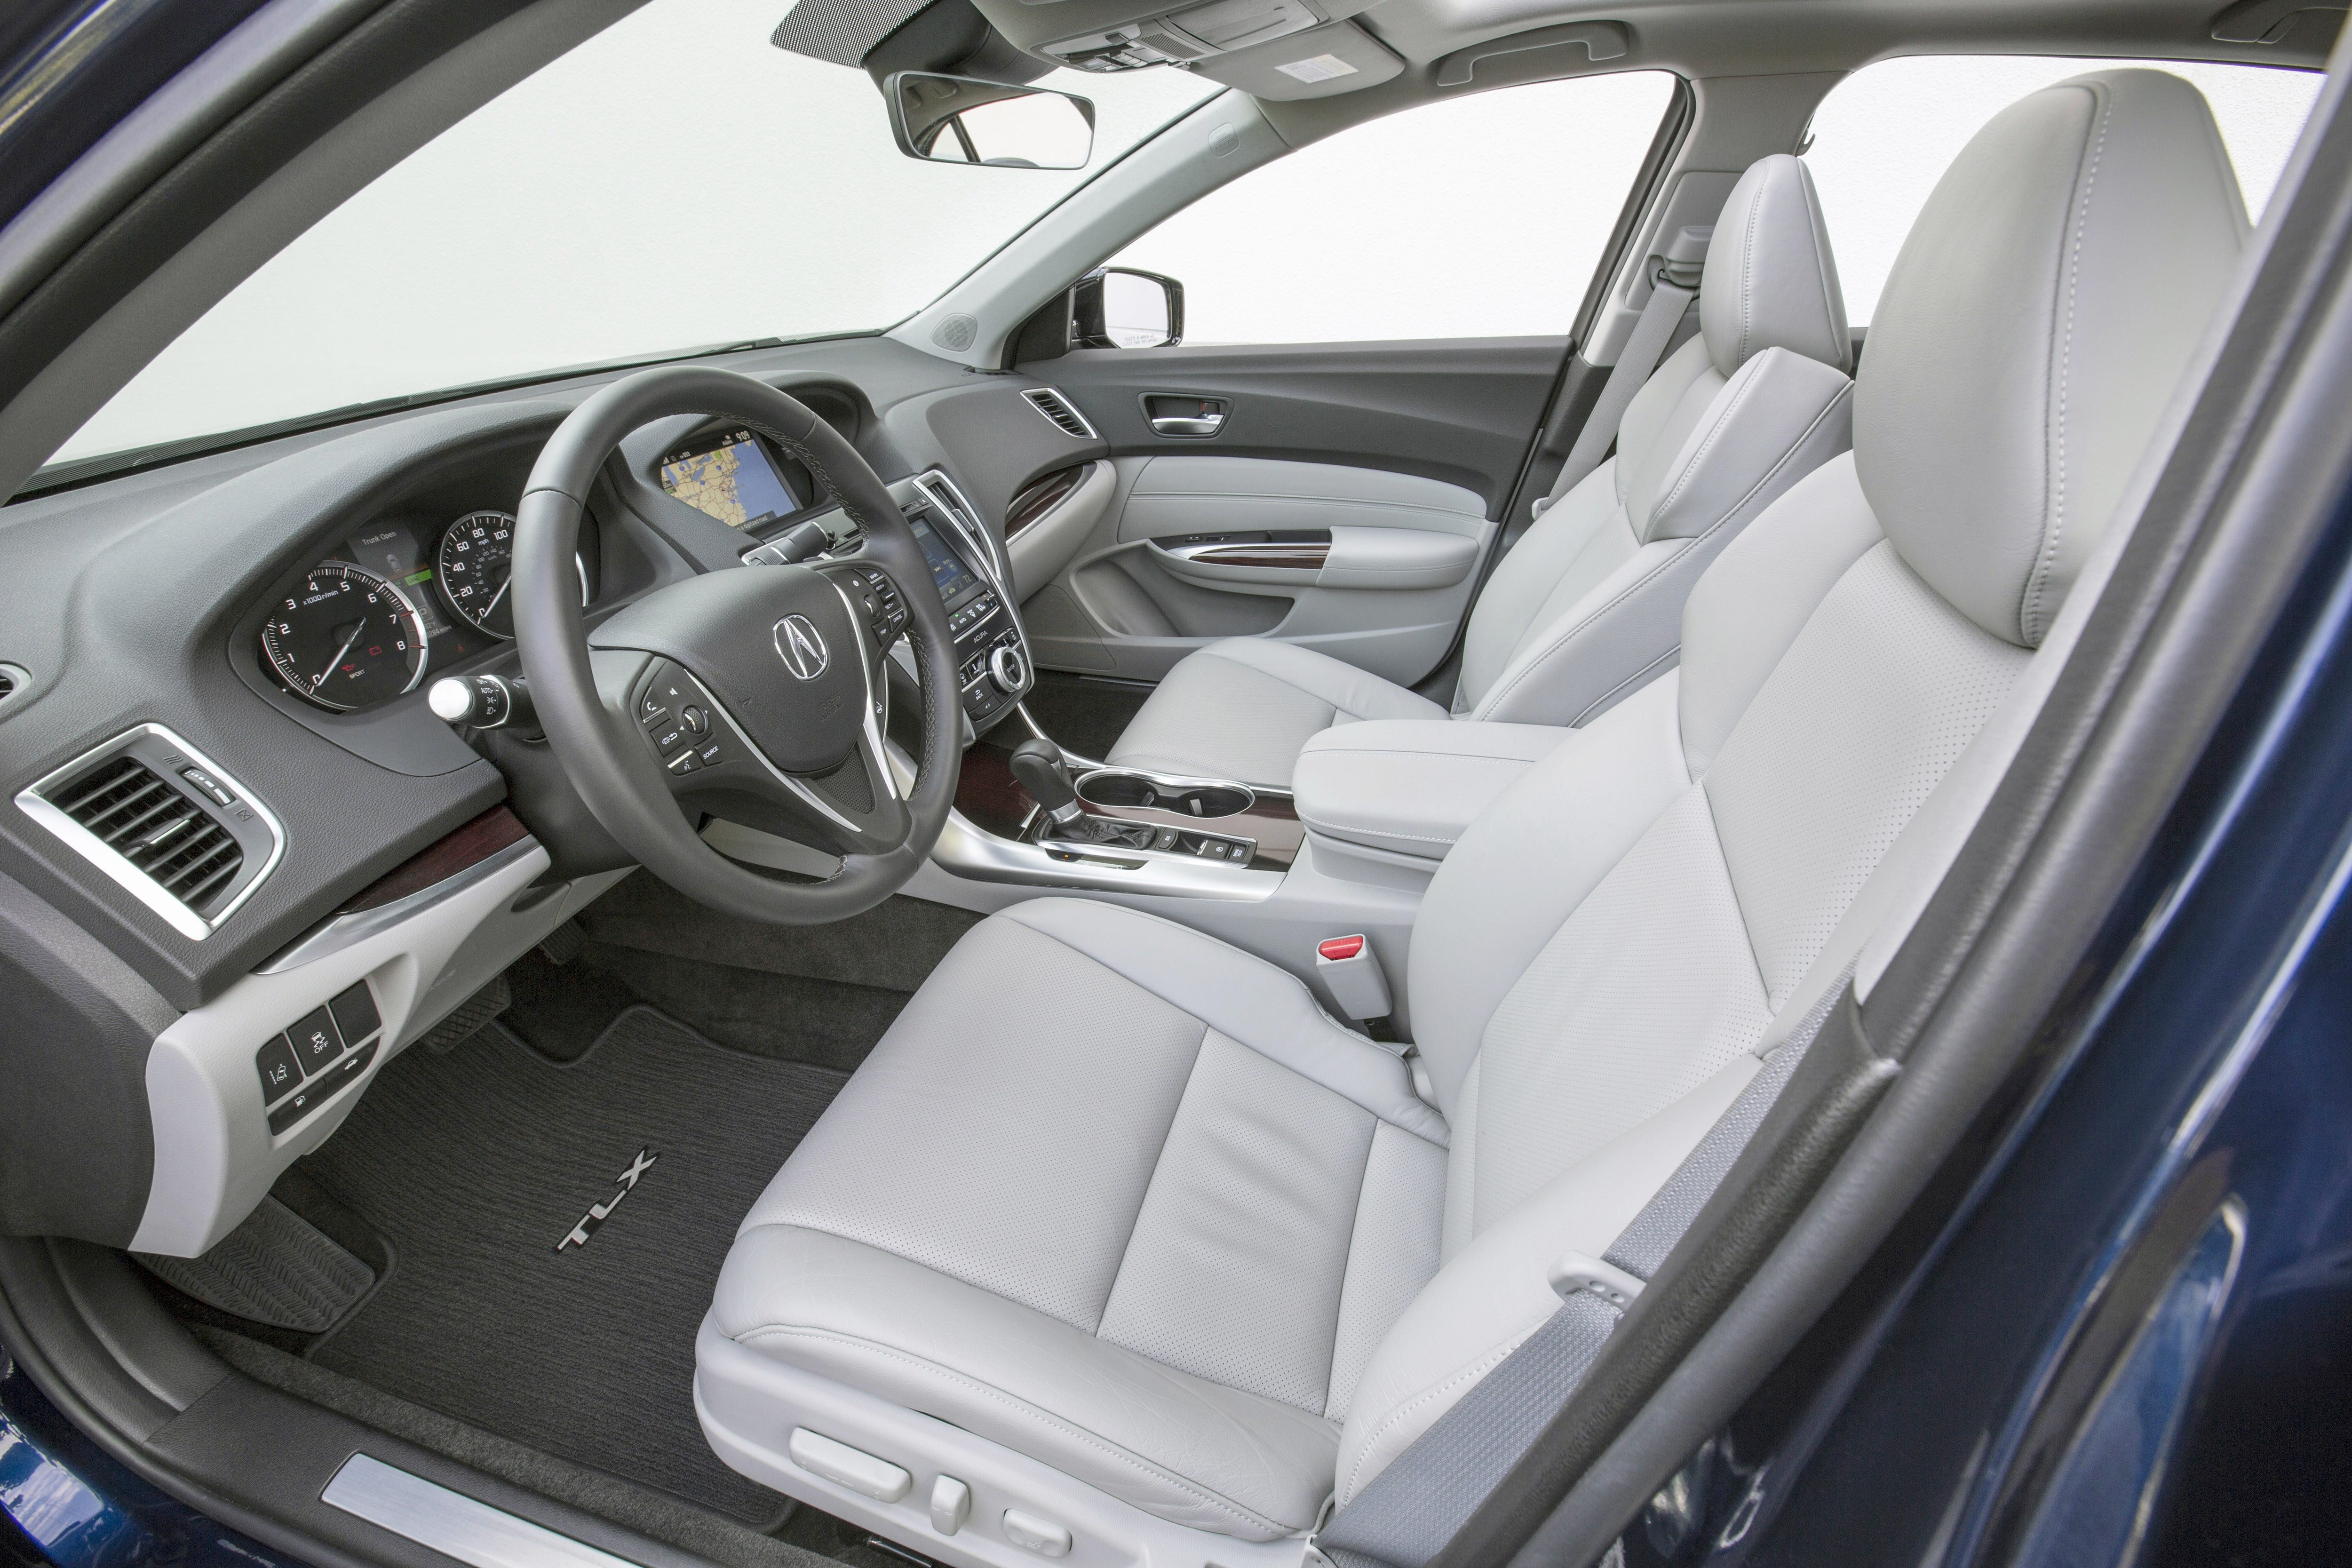 Auto Review: 2015 Acura TLX Is Stylish And Sophisticated Beyond All Reason